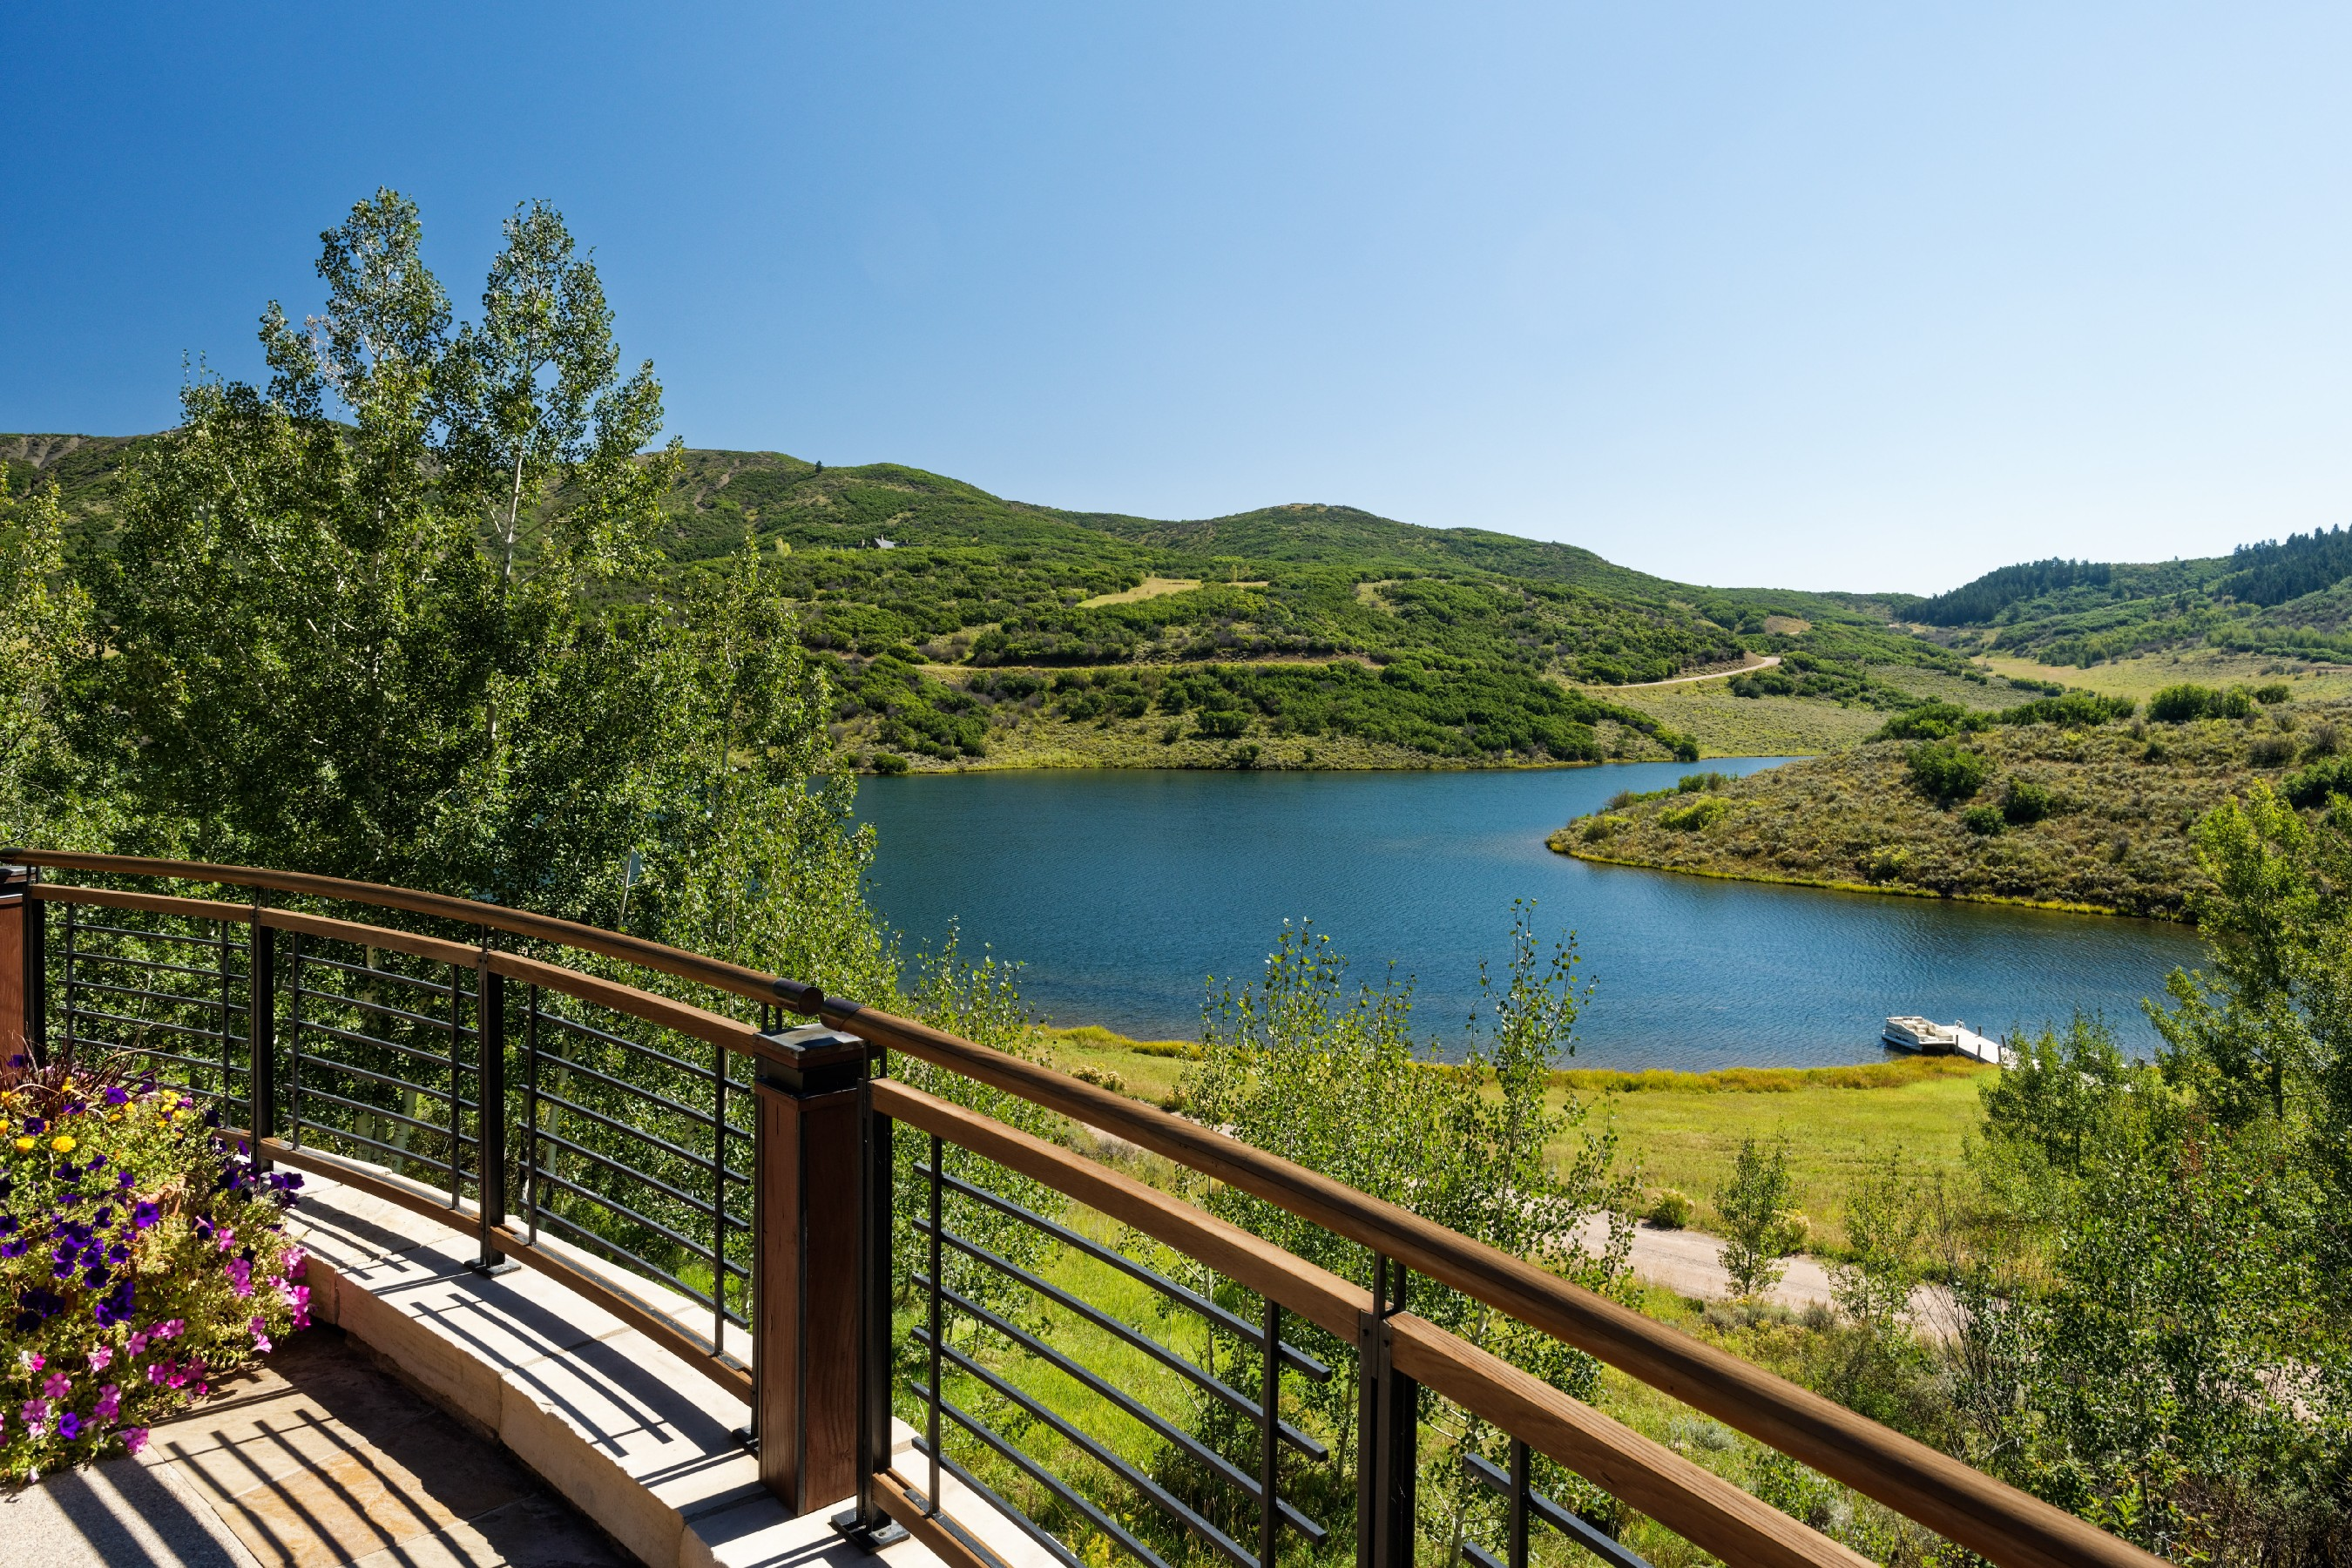 단독 가정 주택 용 매매 에 Your Own Wilderness Overlooking Wildcat Lake 5941 Lake Wildcat Road Snowmass Village, 콜로라도, 81615 미국